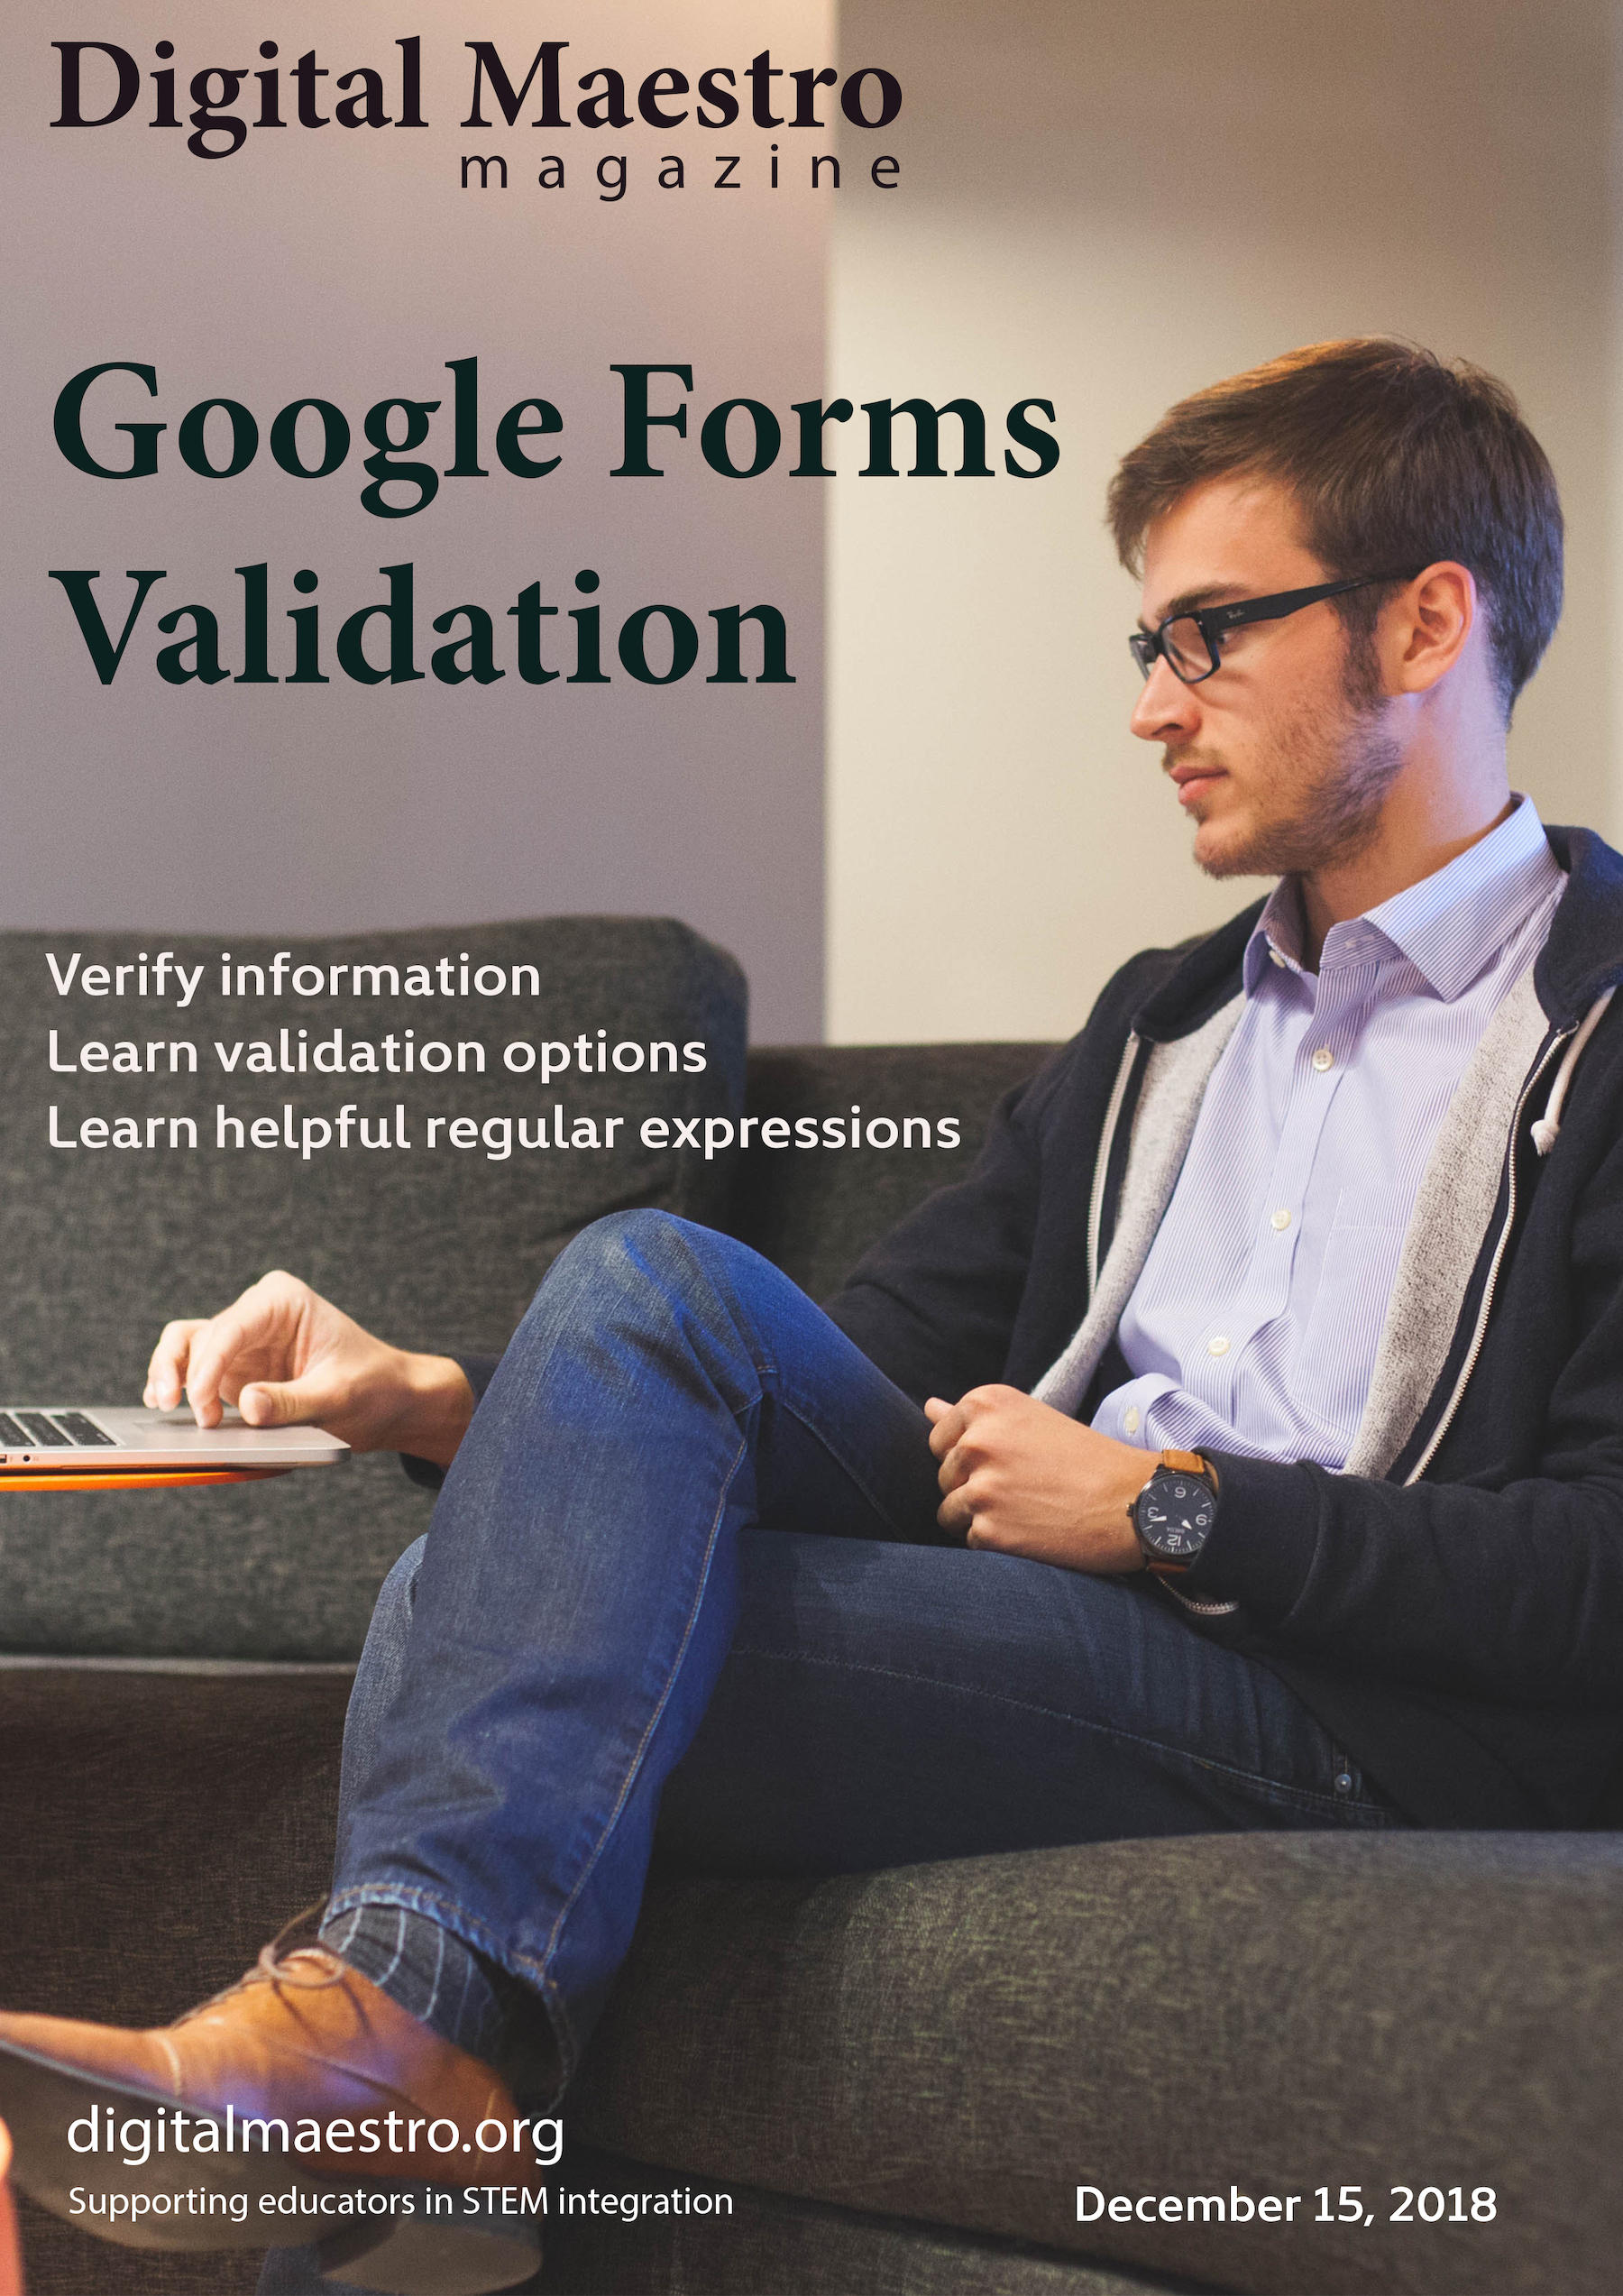 Google FormsValidation - Validate information in forms before submission. Learn how to use validation options. Learn helpful regular expression for input validation.